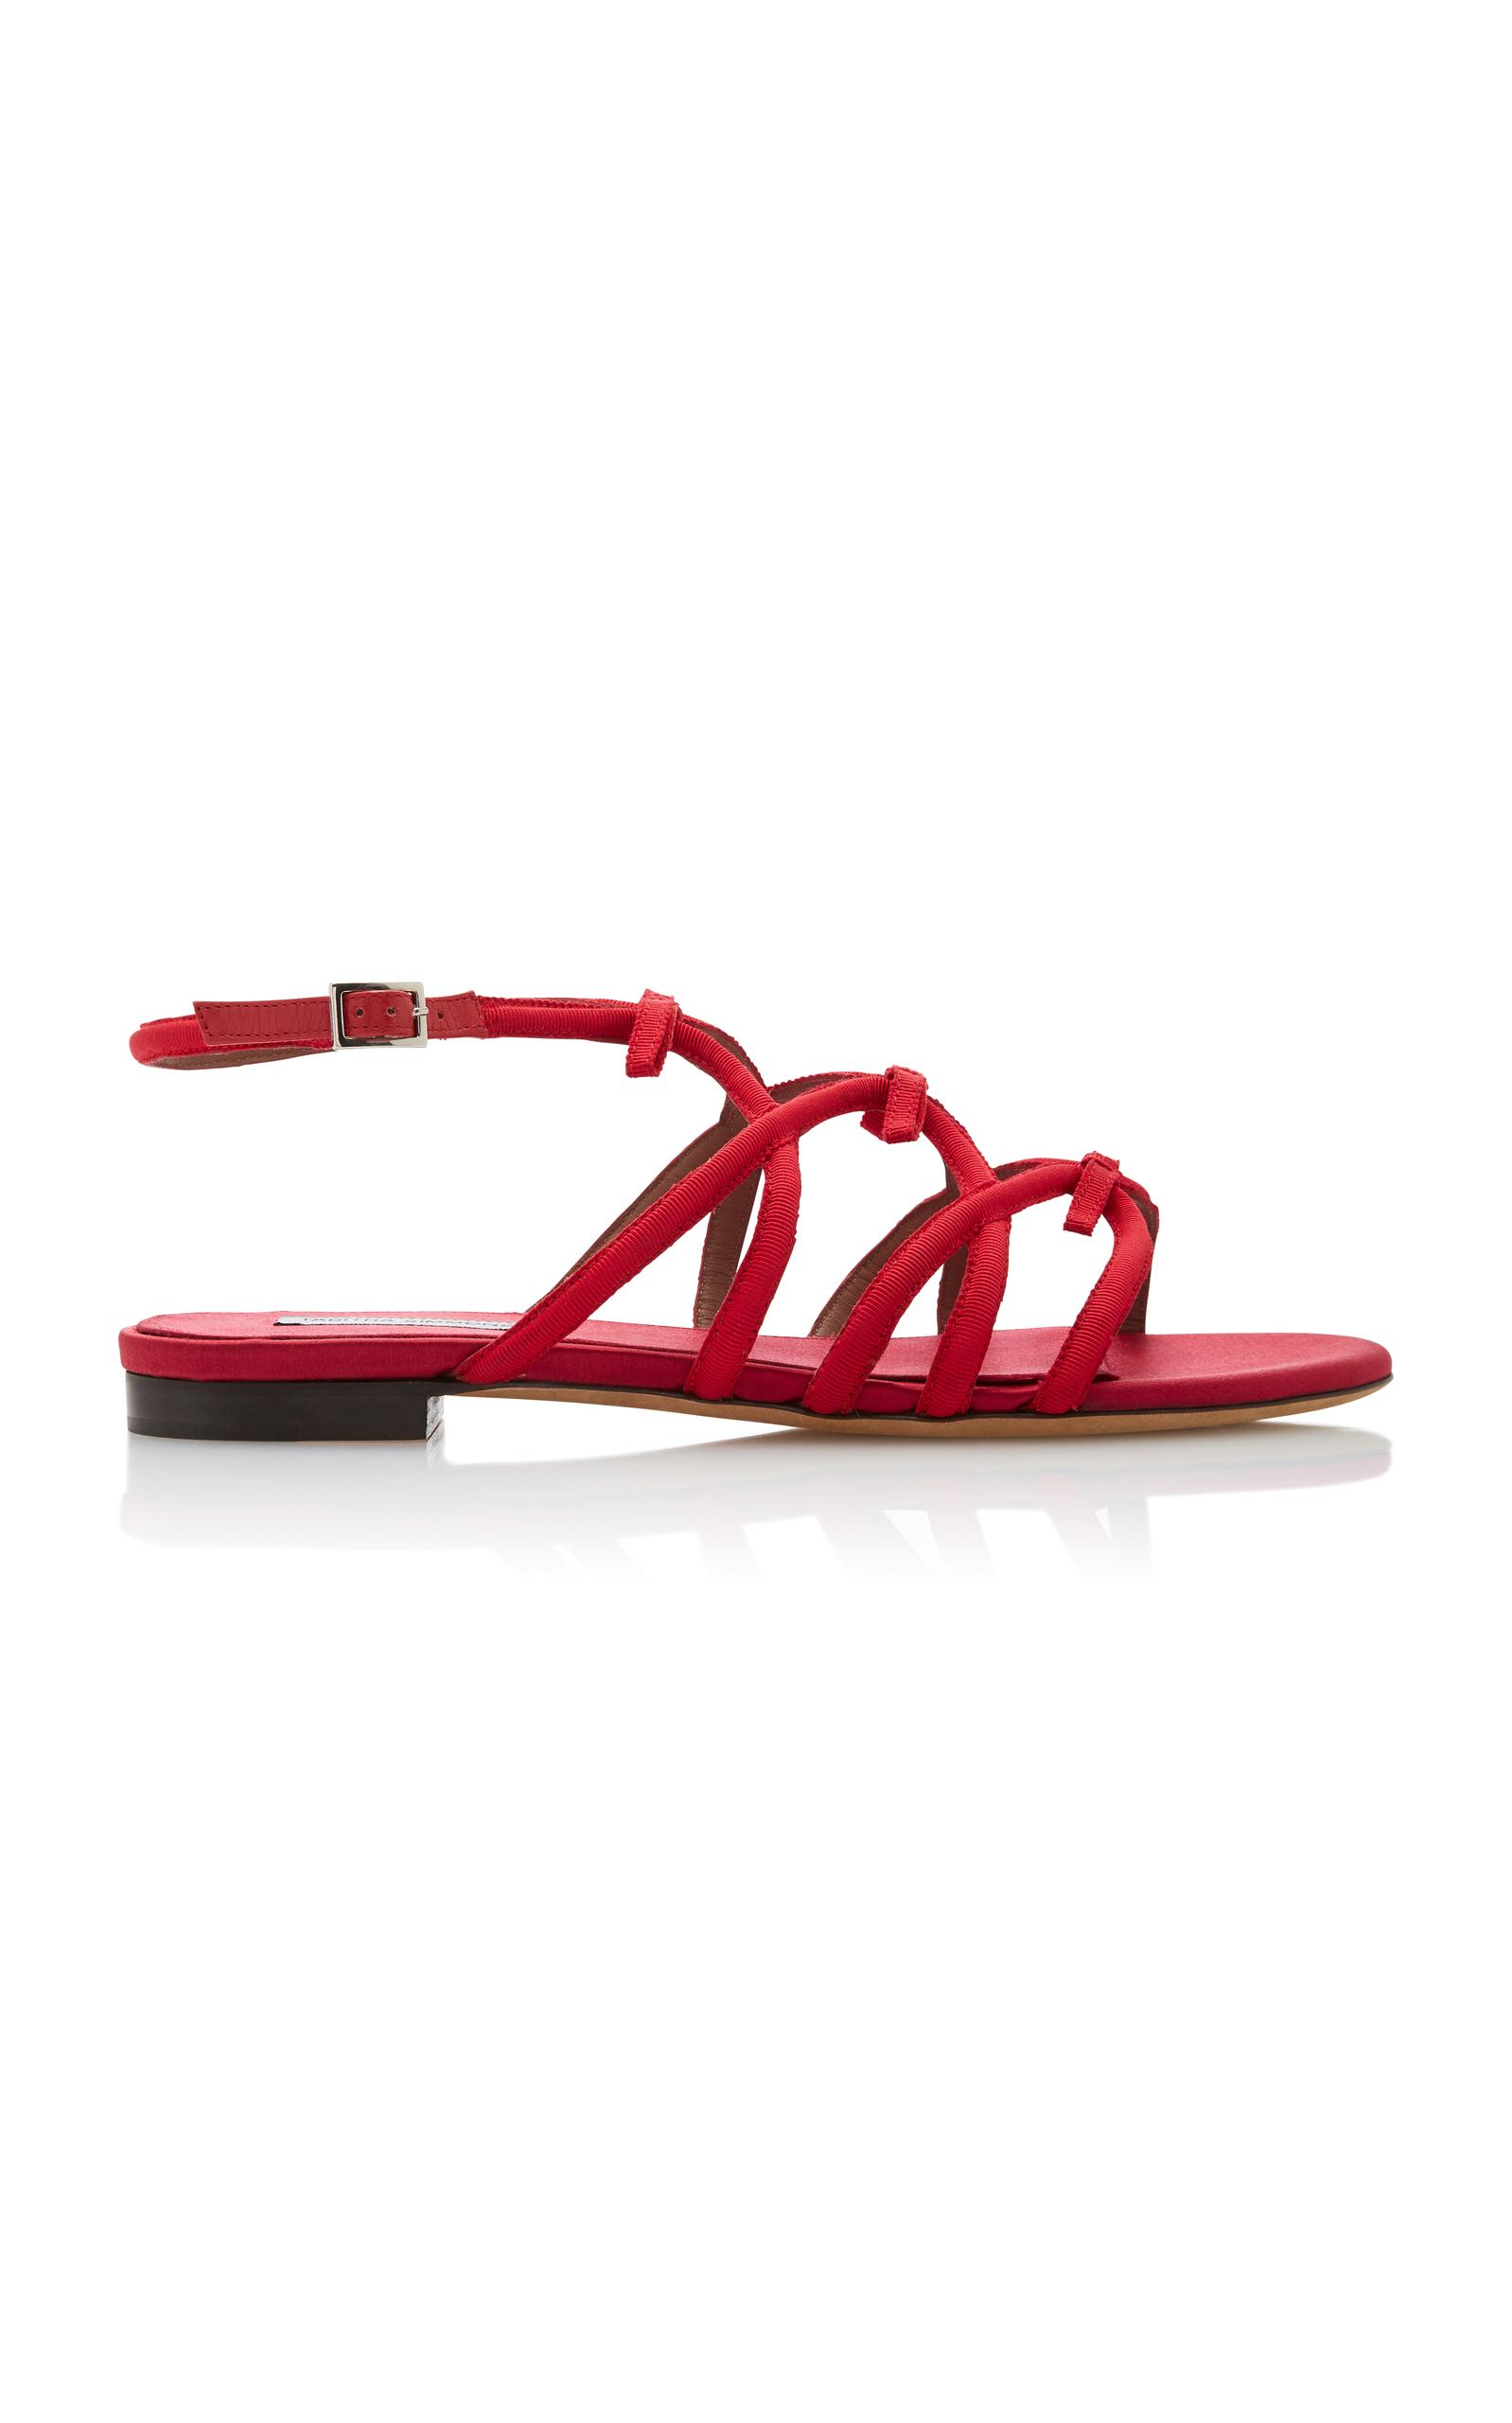 Tabitha Simmons Women's Minna Bow Sandals In Red